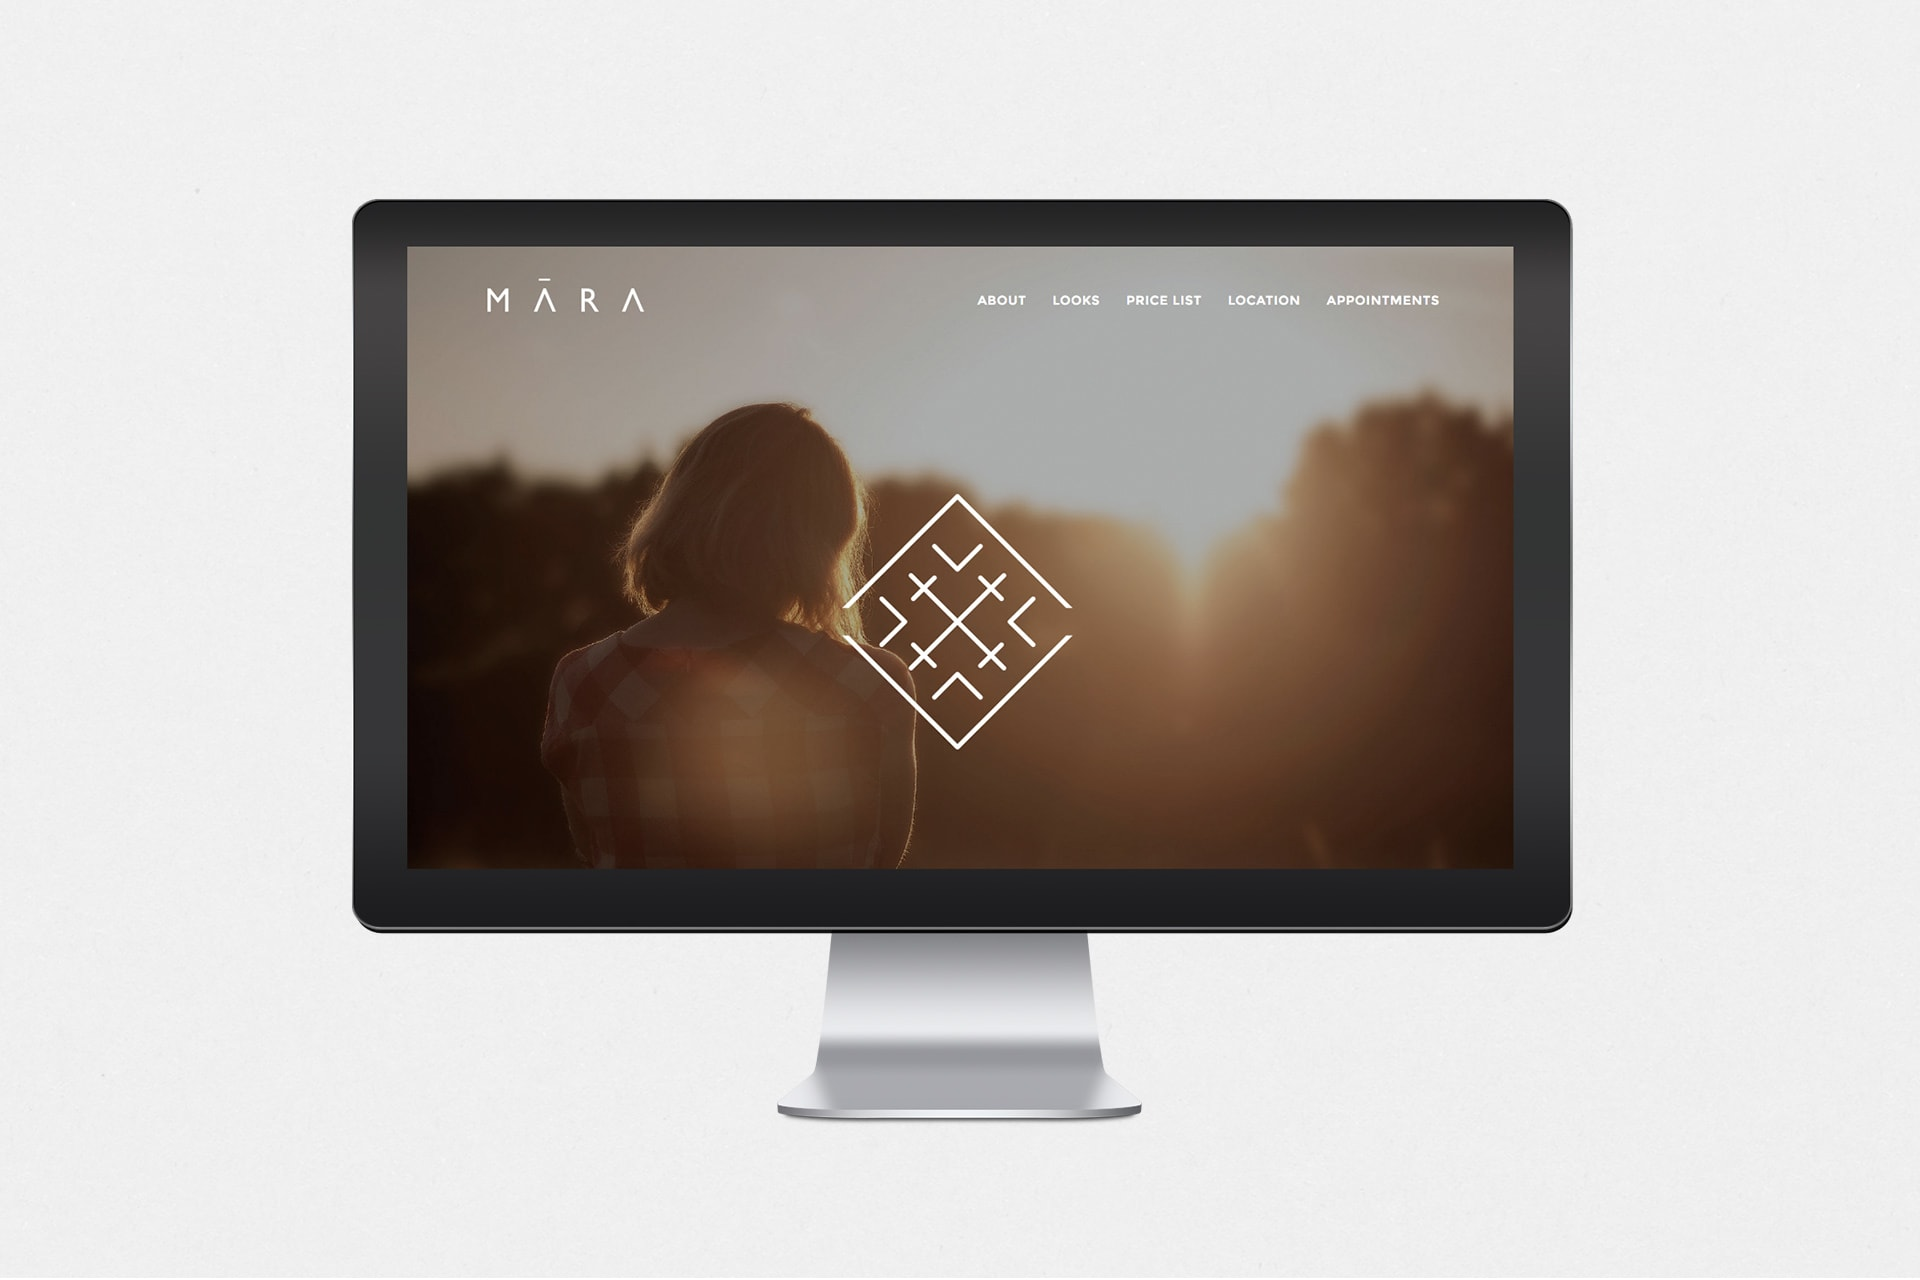 Mara website homepage